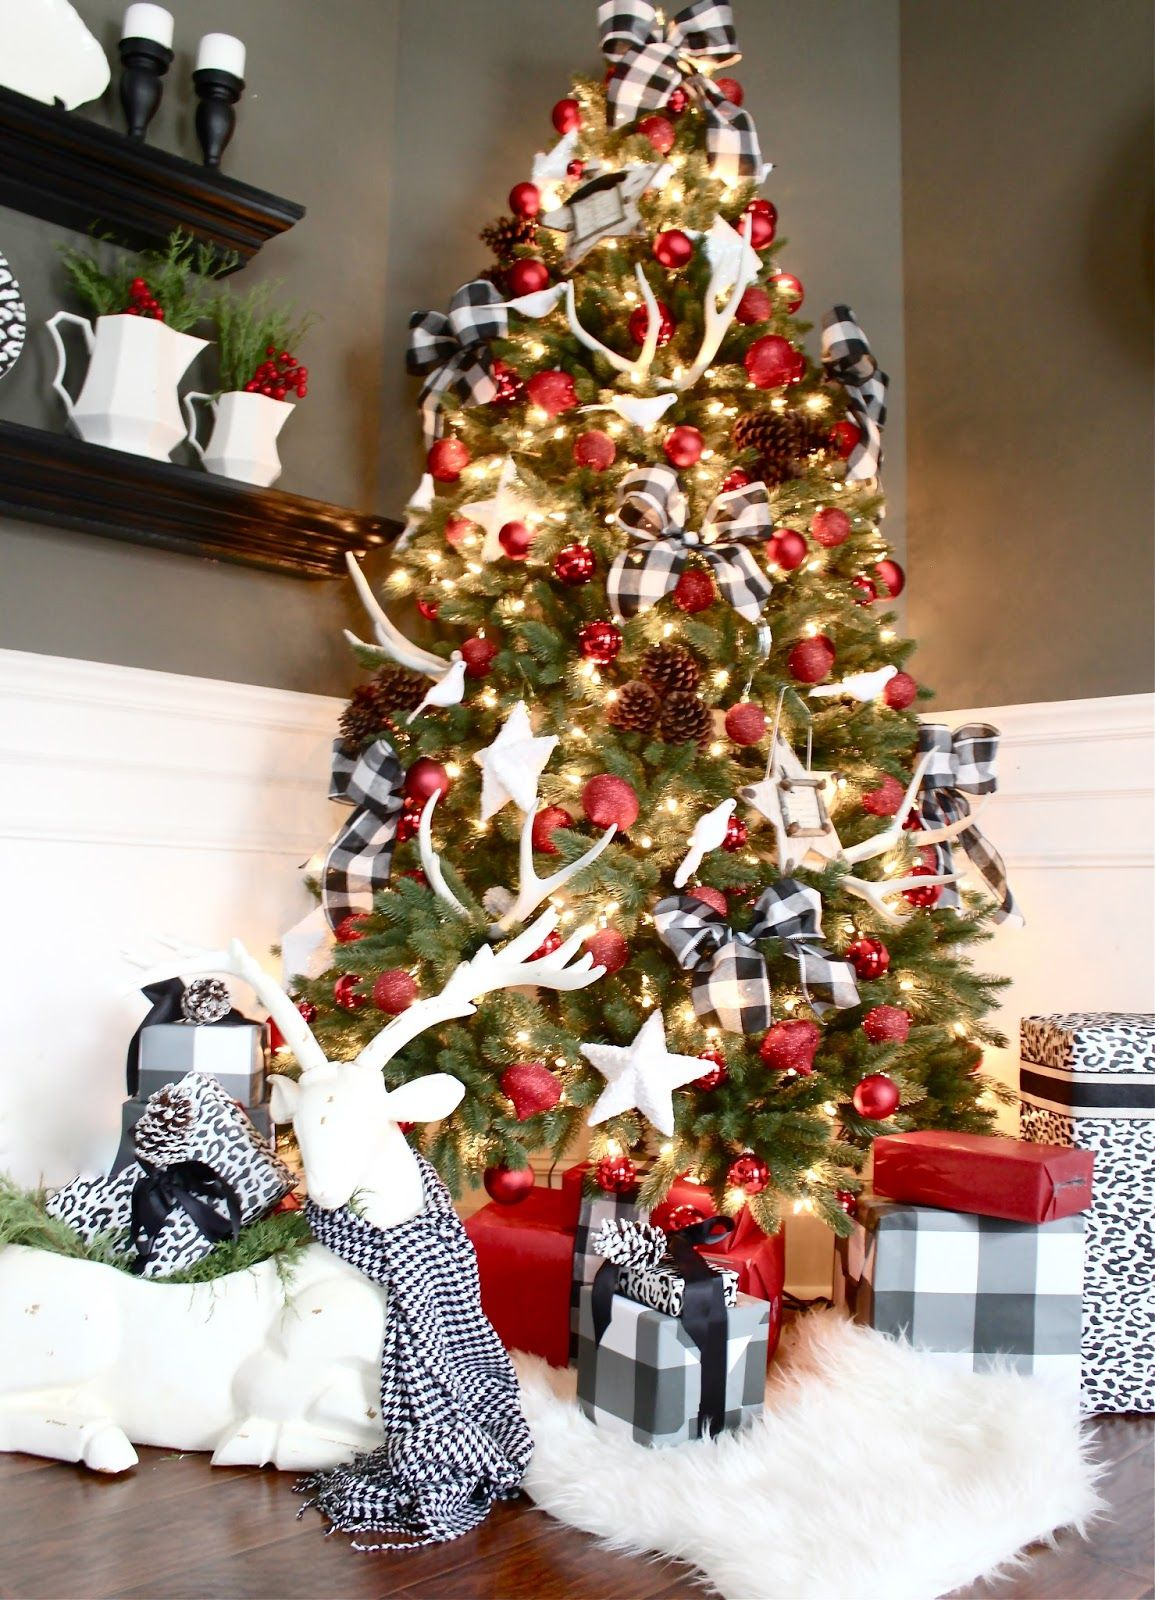 buffalo check christmas style series full of decor inspiration ideas and decor finds to add the classic fun feel of buffalo check to your christmas - Buffalo Plaid Christmas Decor